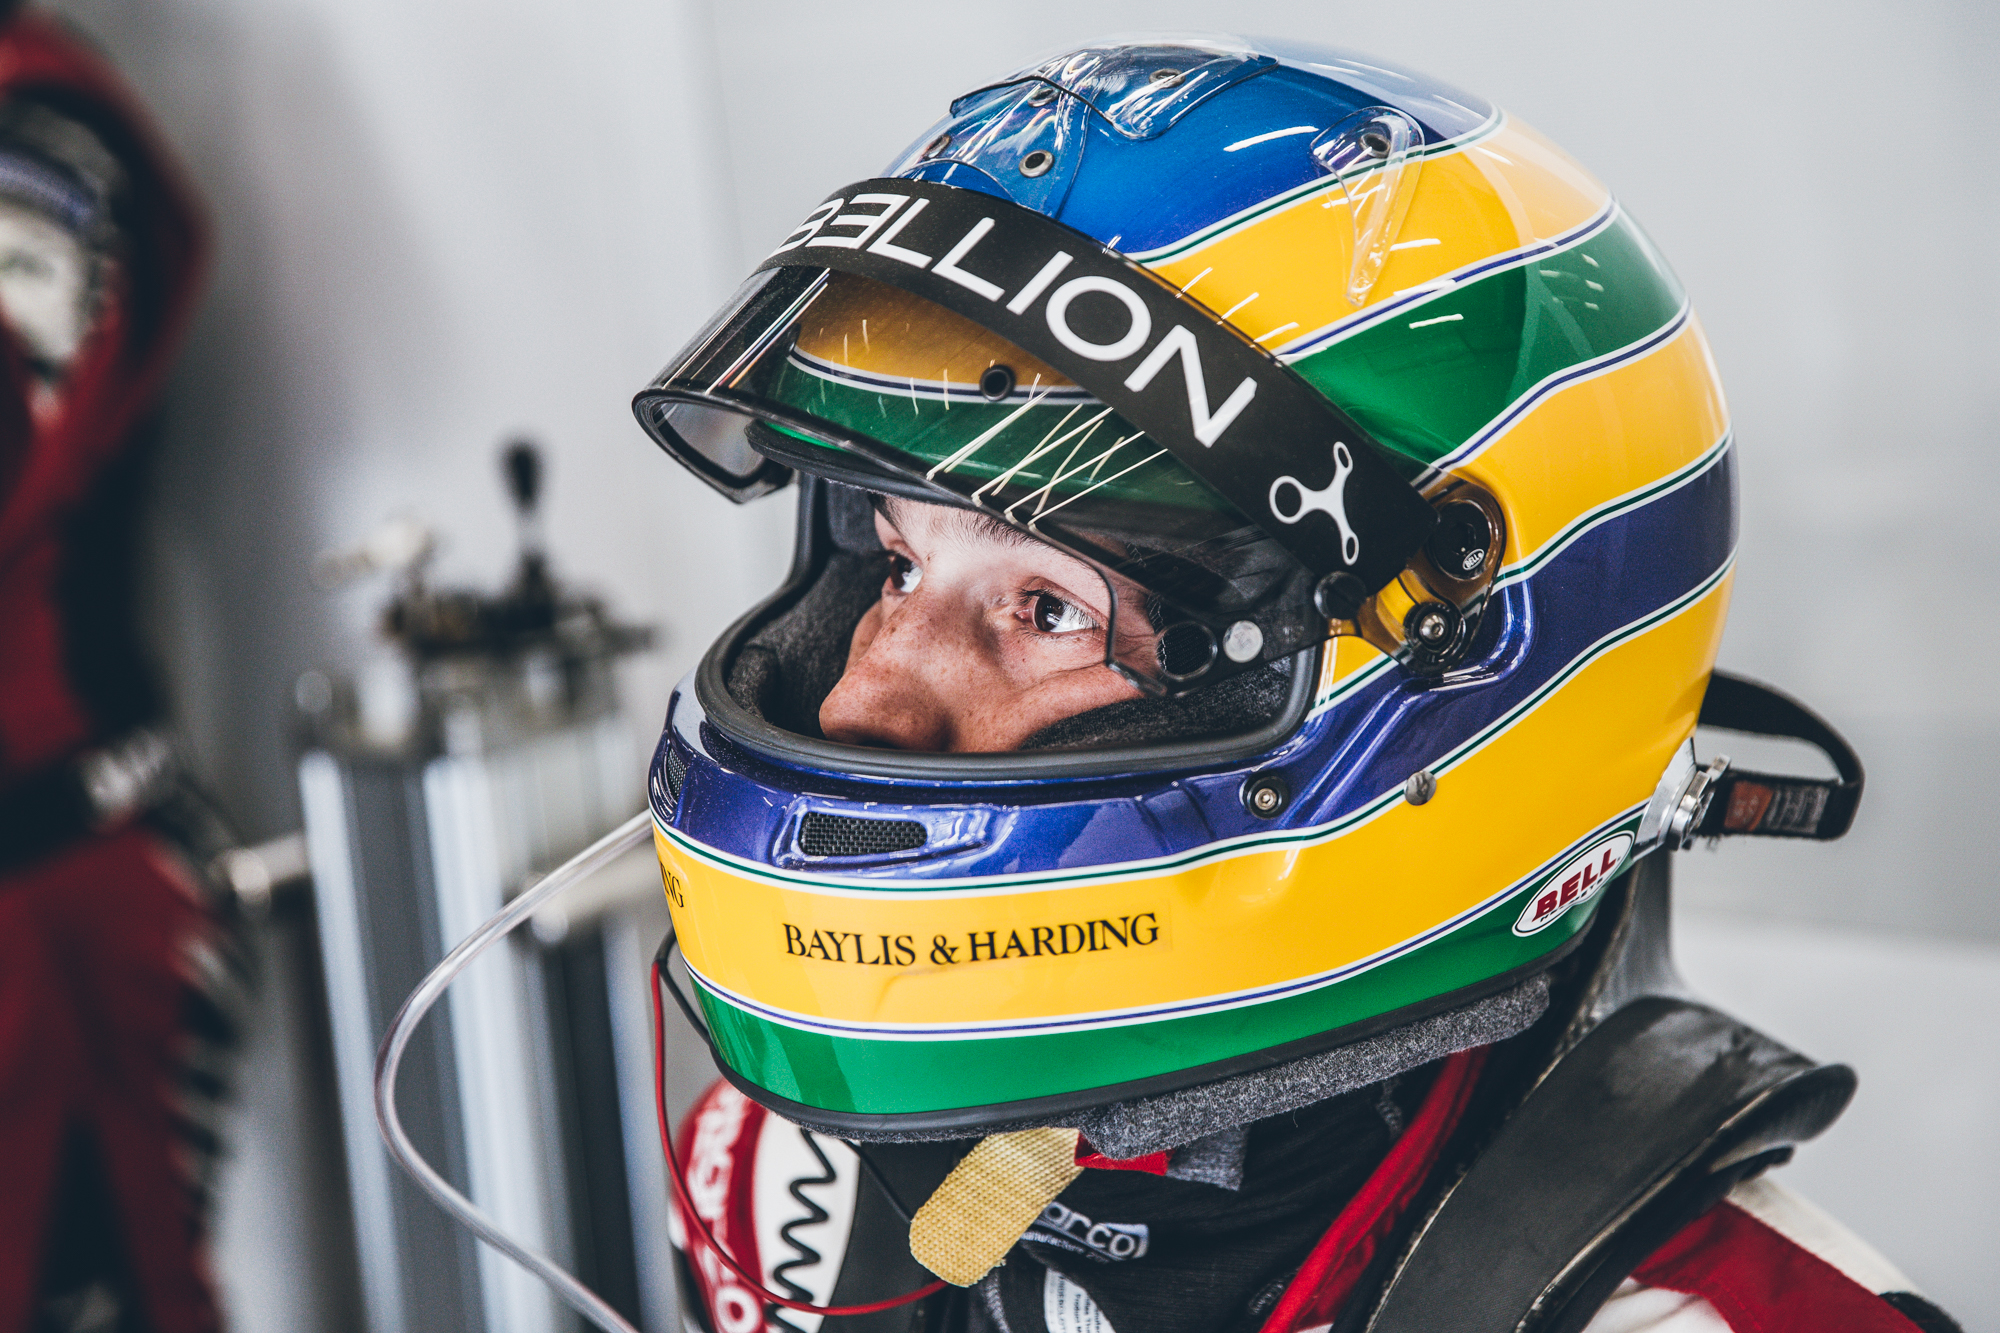 Senna: The more I can drive, the better.